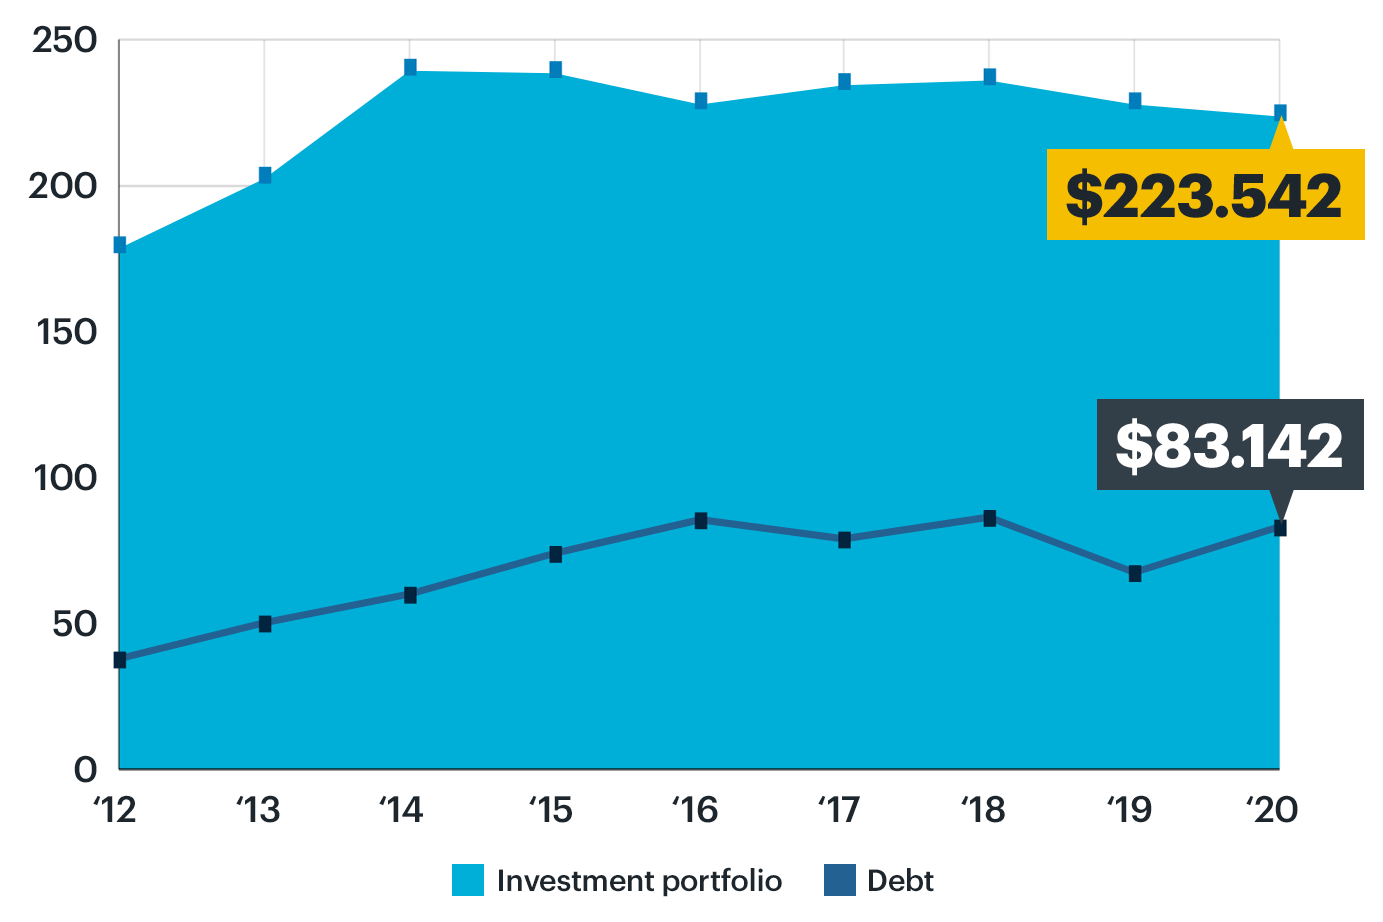 Chart: OCLC FY20 investment portfolio and debt